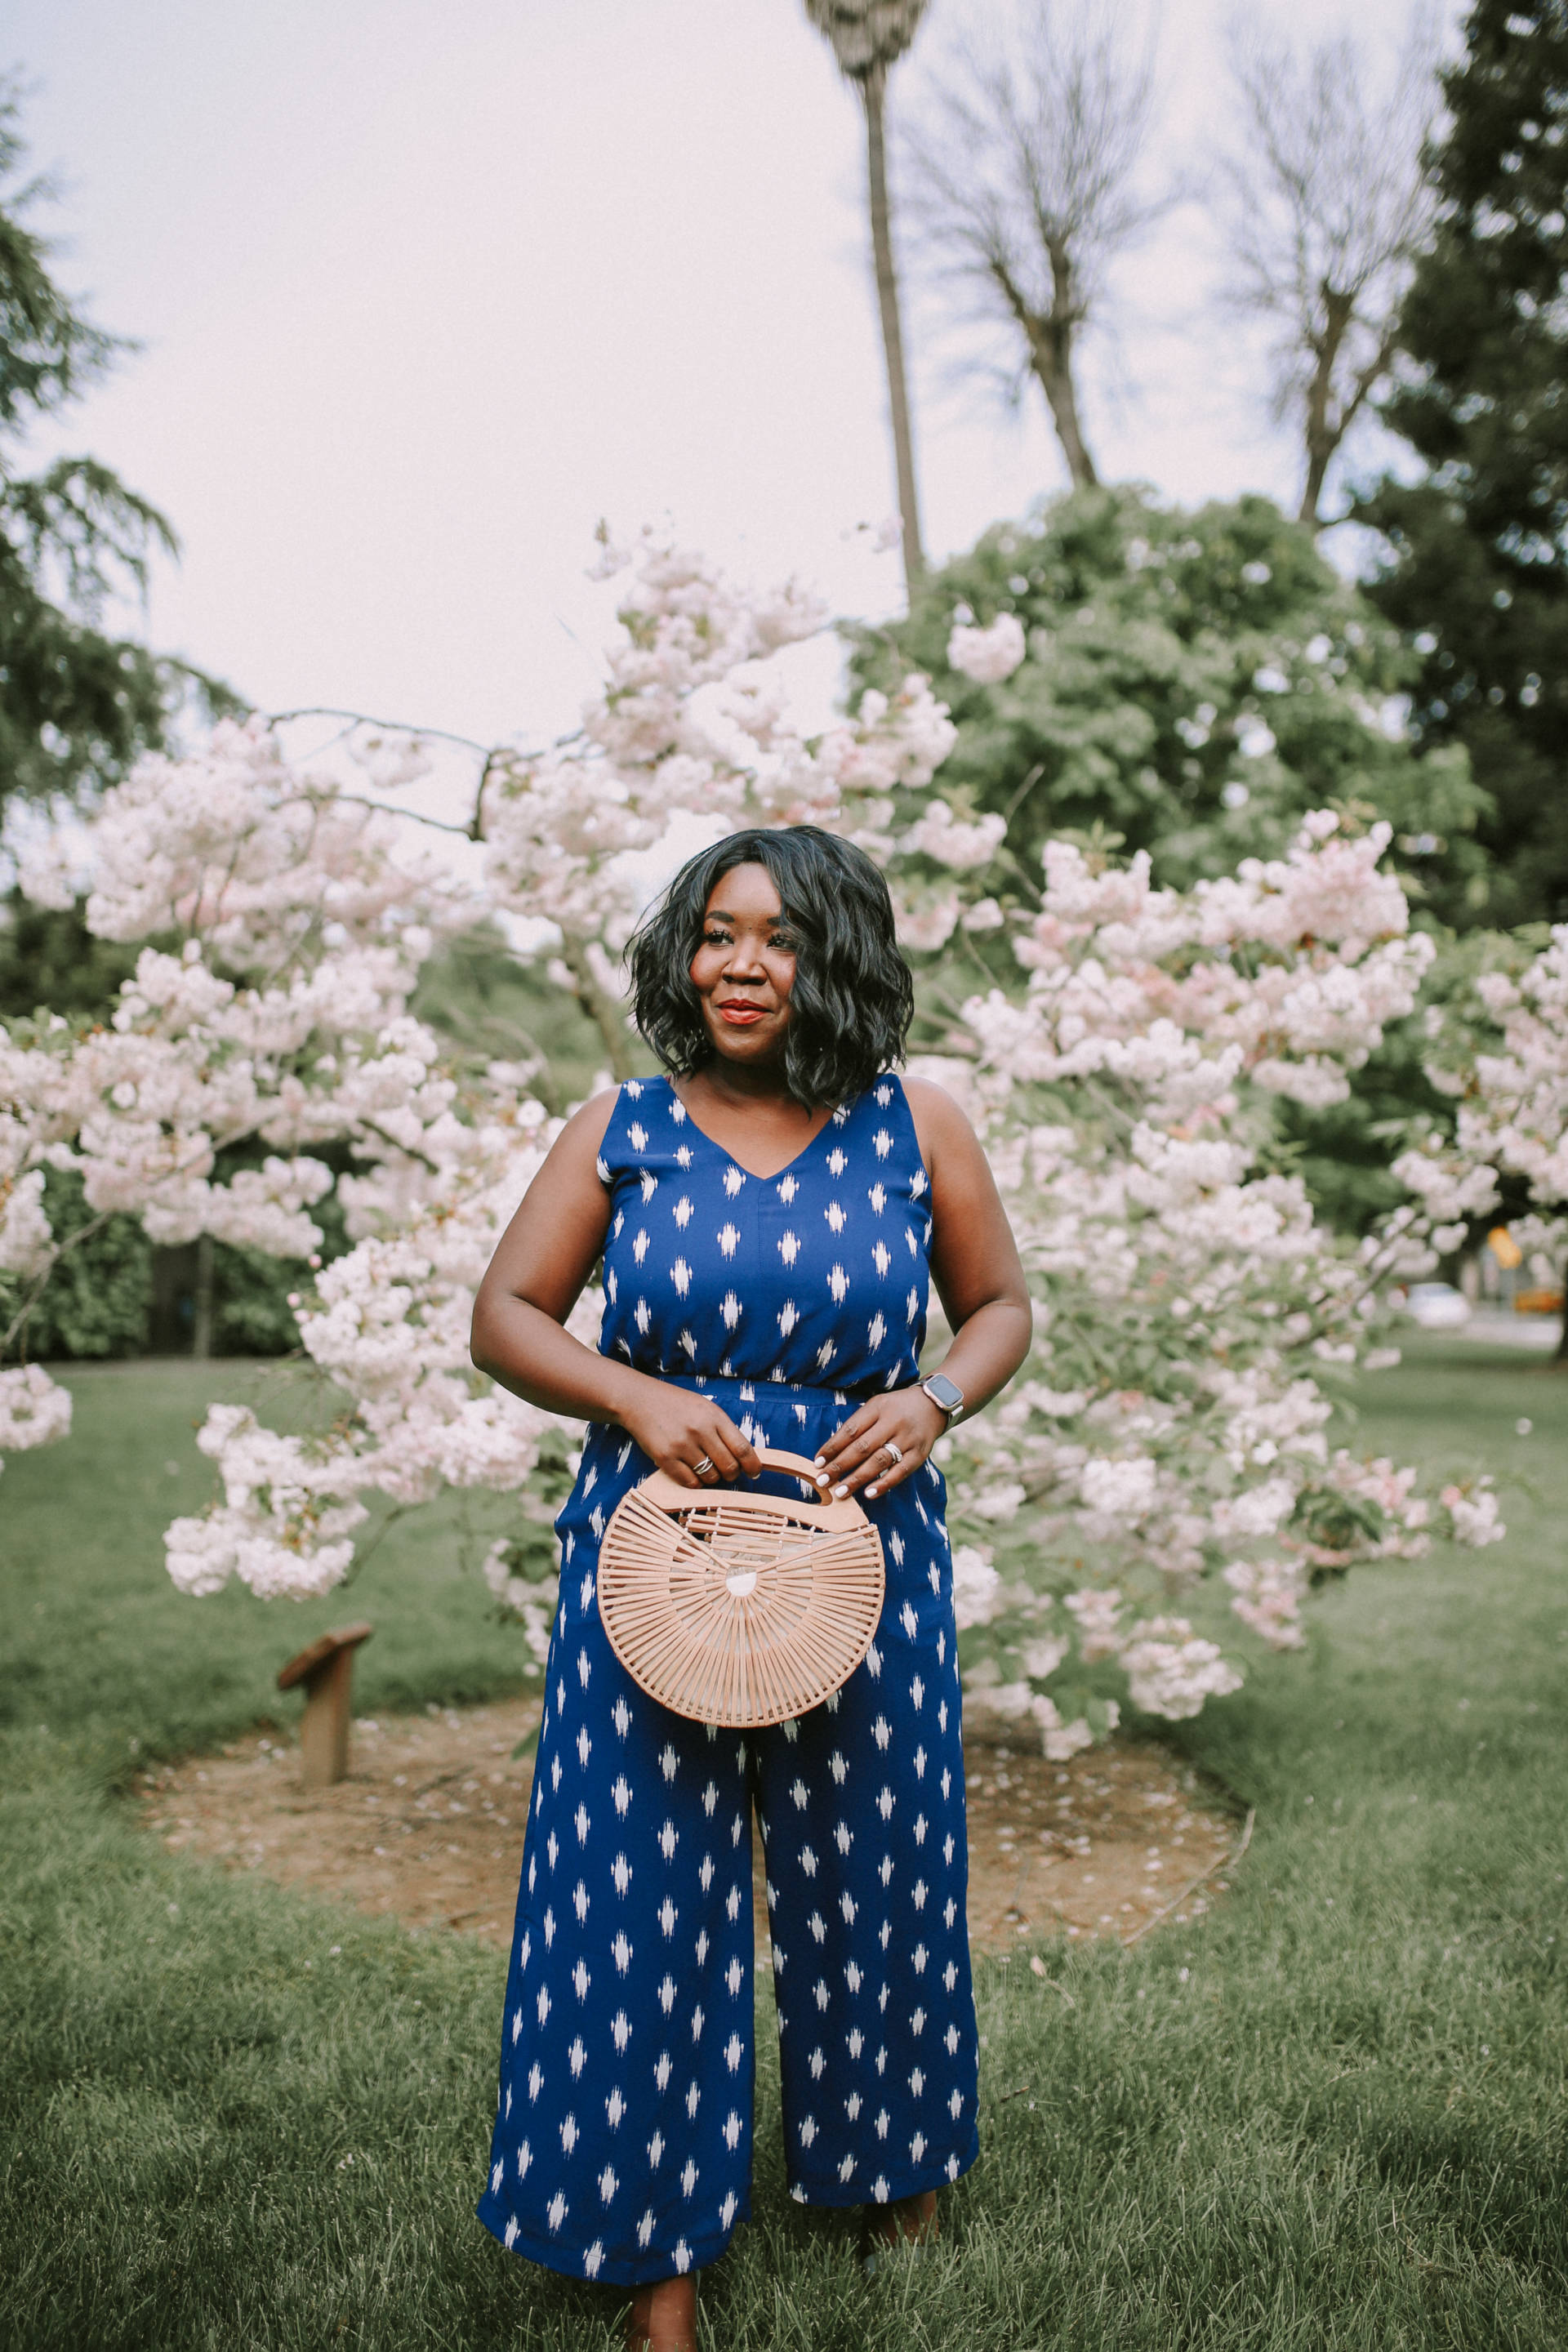 Gibson X LIY Garden Party Collection + Giveaway